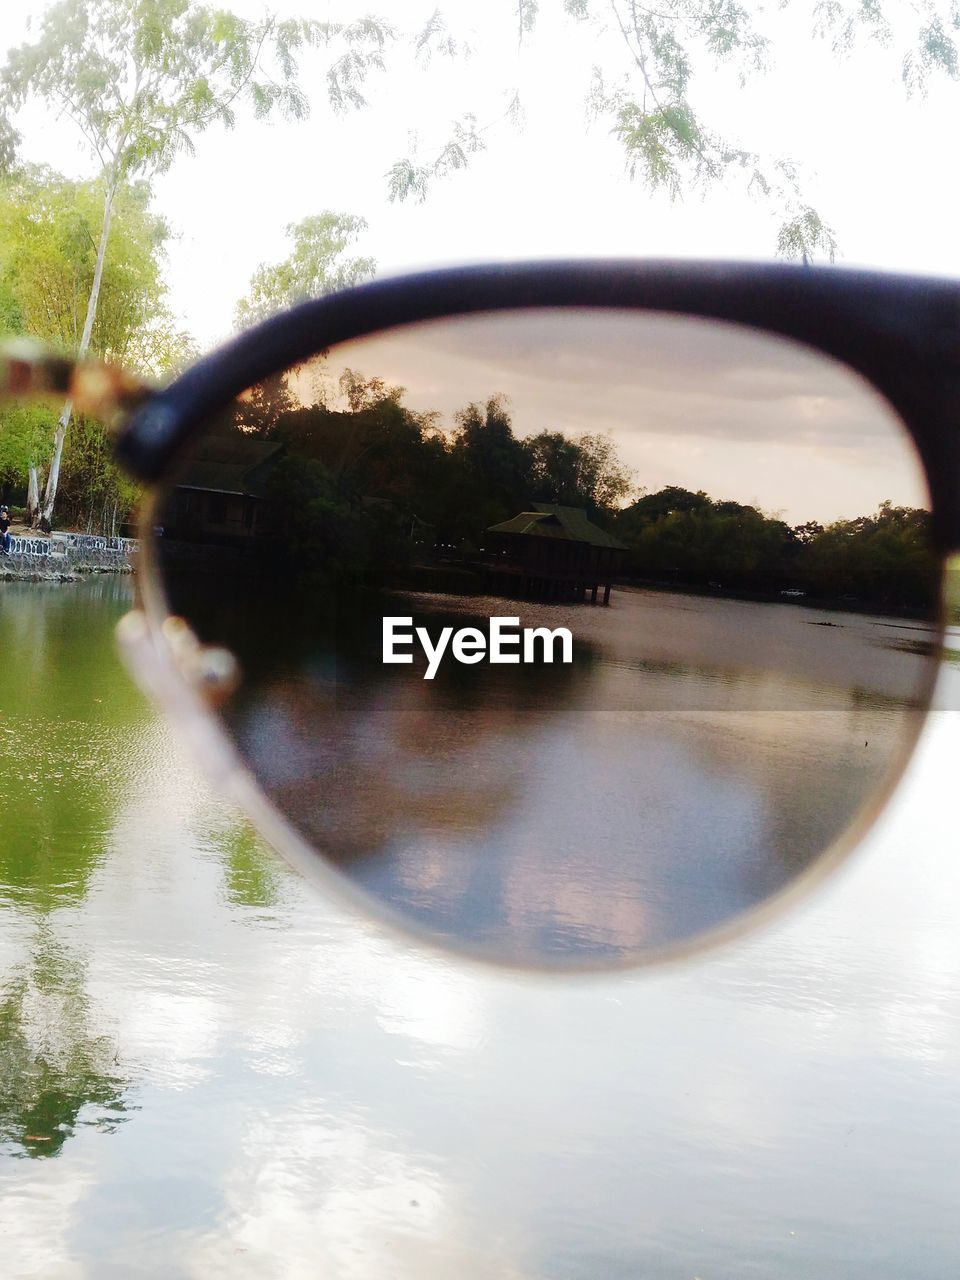 reflection, sunglasses, water, tree, side-view mirror, day, sky, eyeglasses, outdoors, no people, grass, nature, eyesight, fish-eye lens, building exterior, close-up